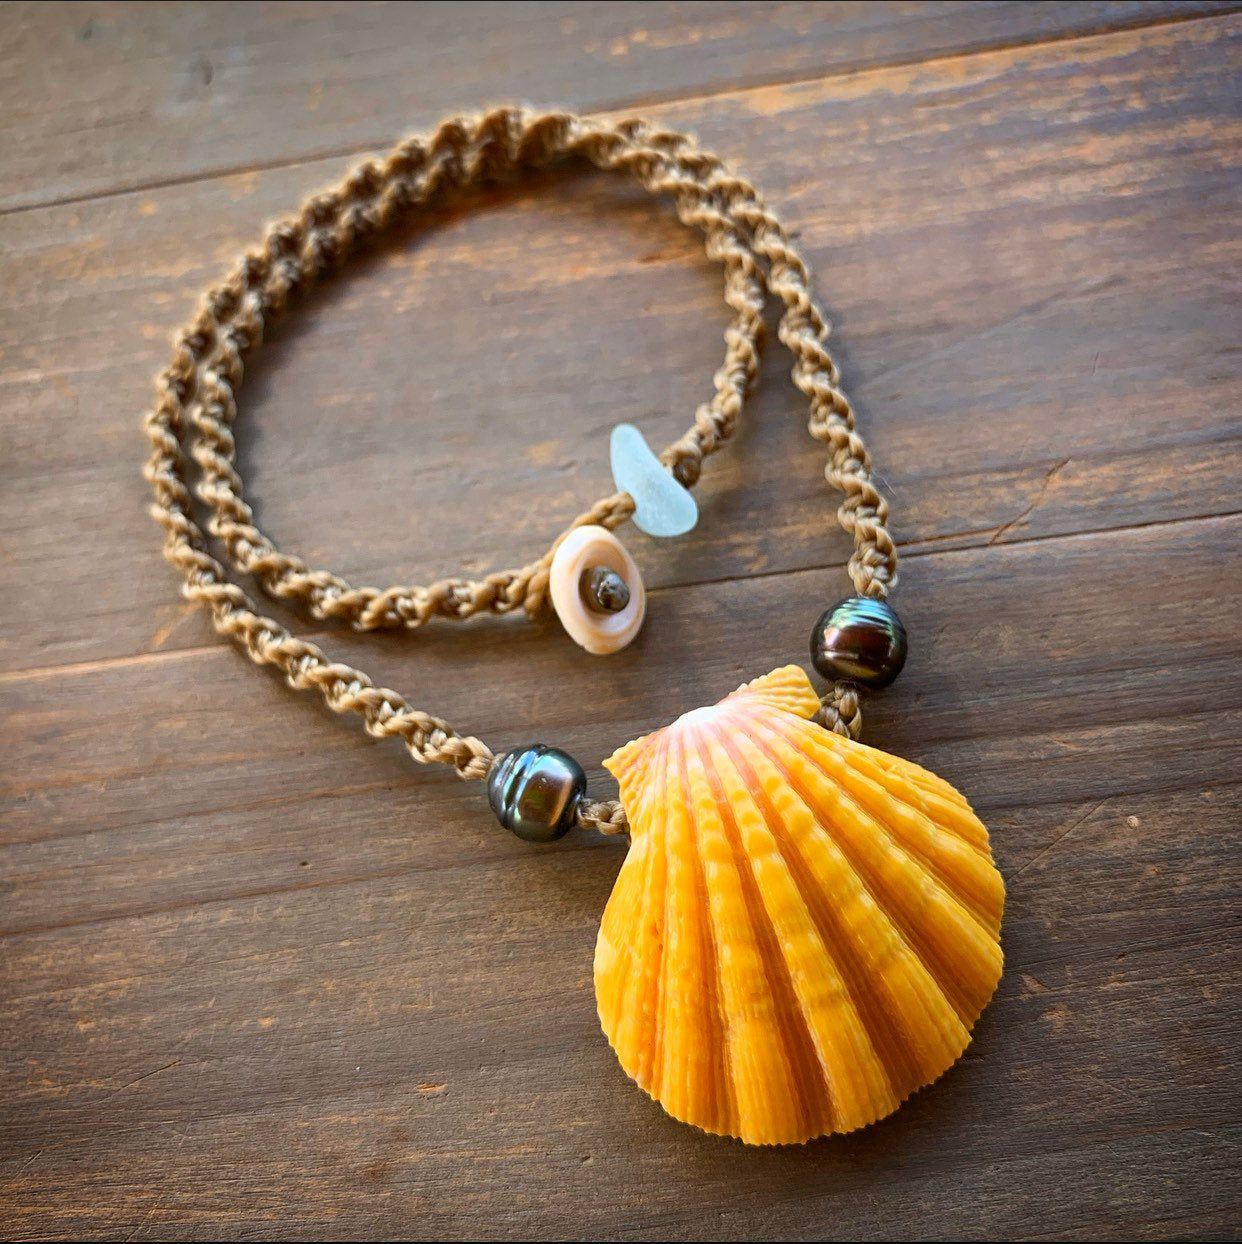 Hawaiian sunrise shell with Tahitian pearls necklace with locking seaglass clasp